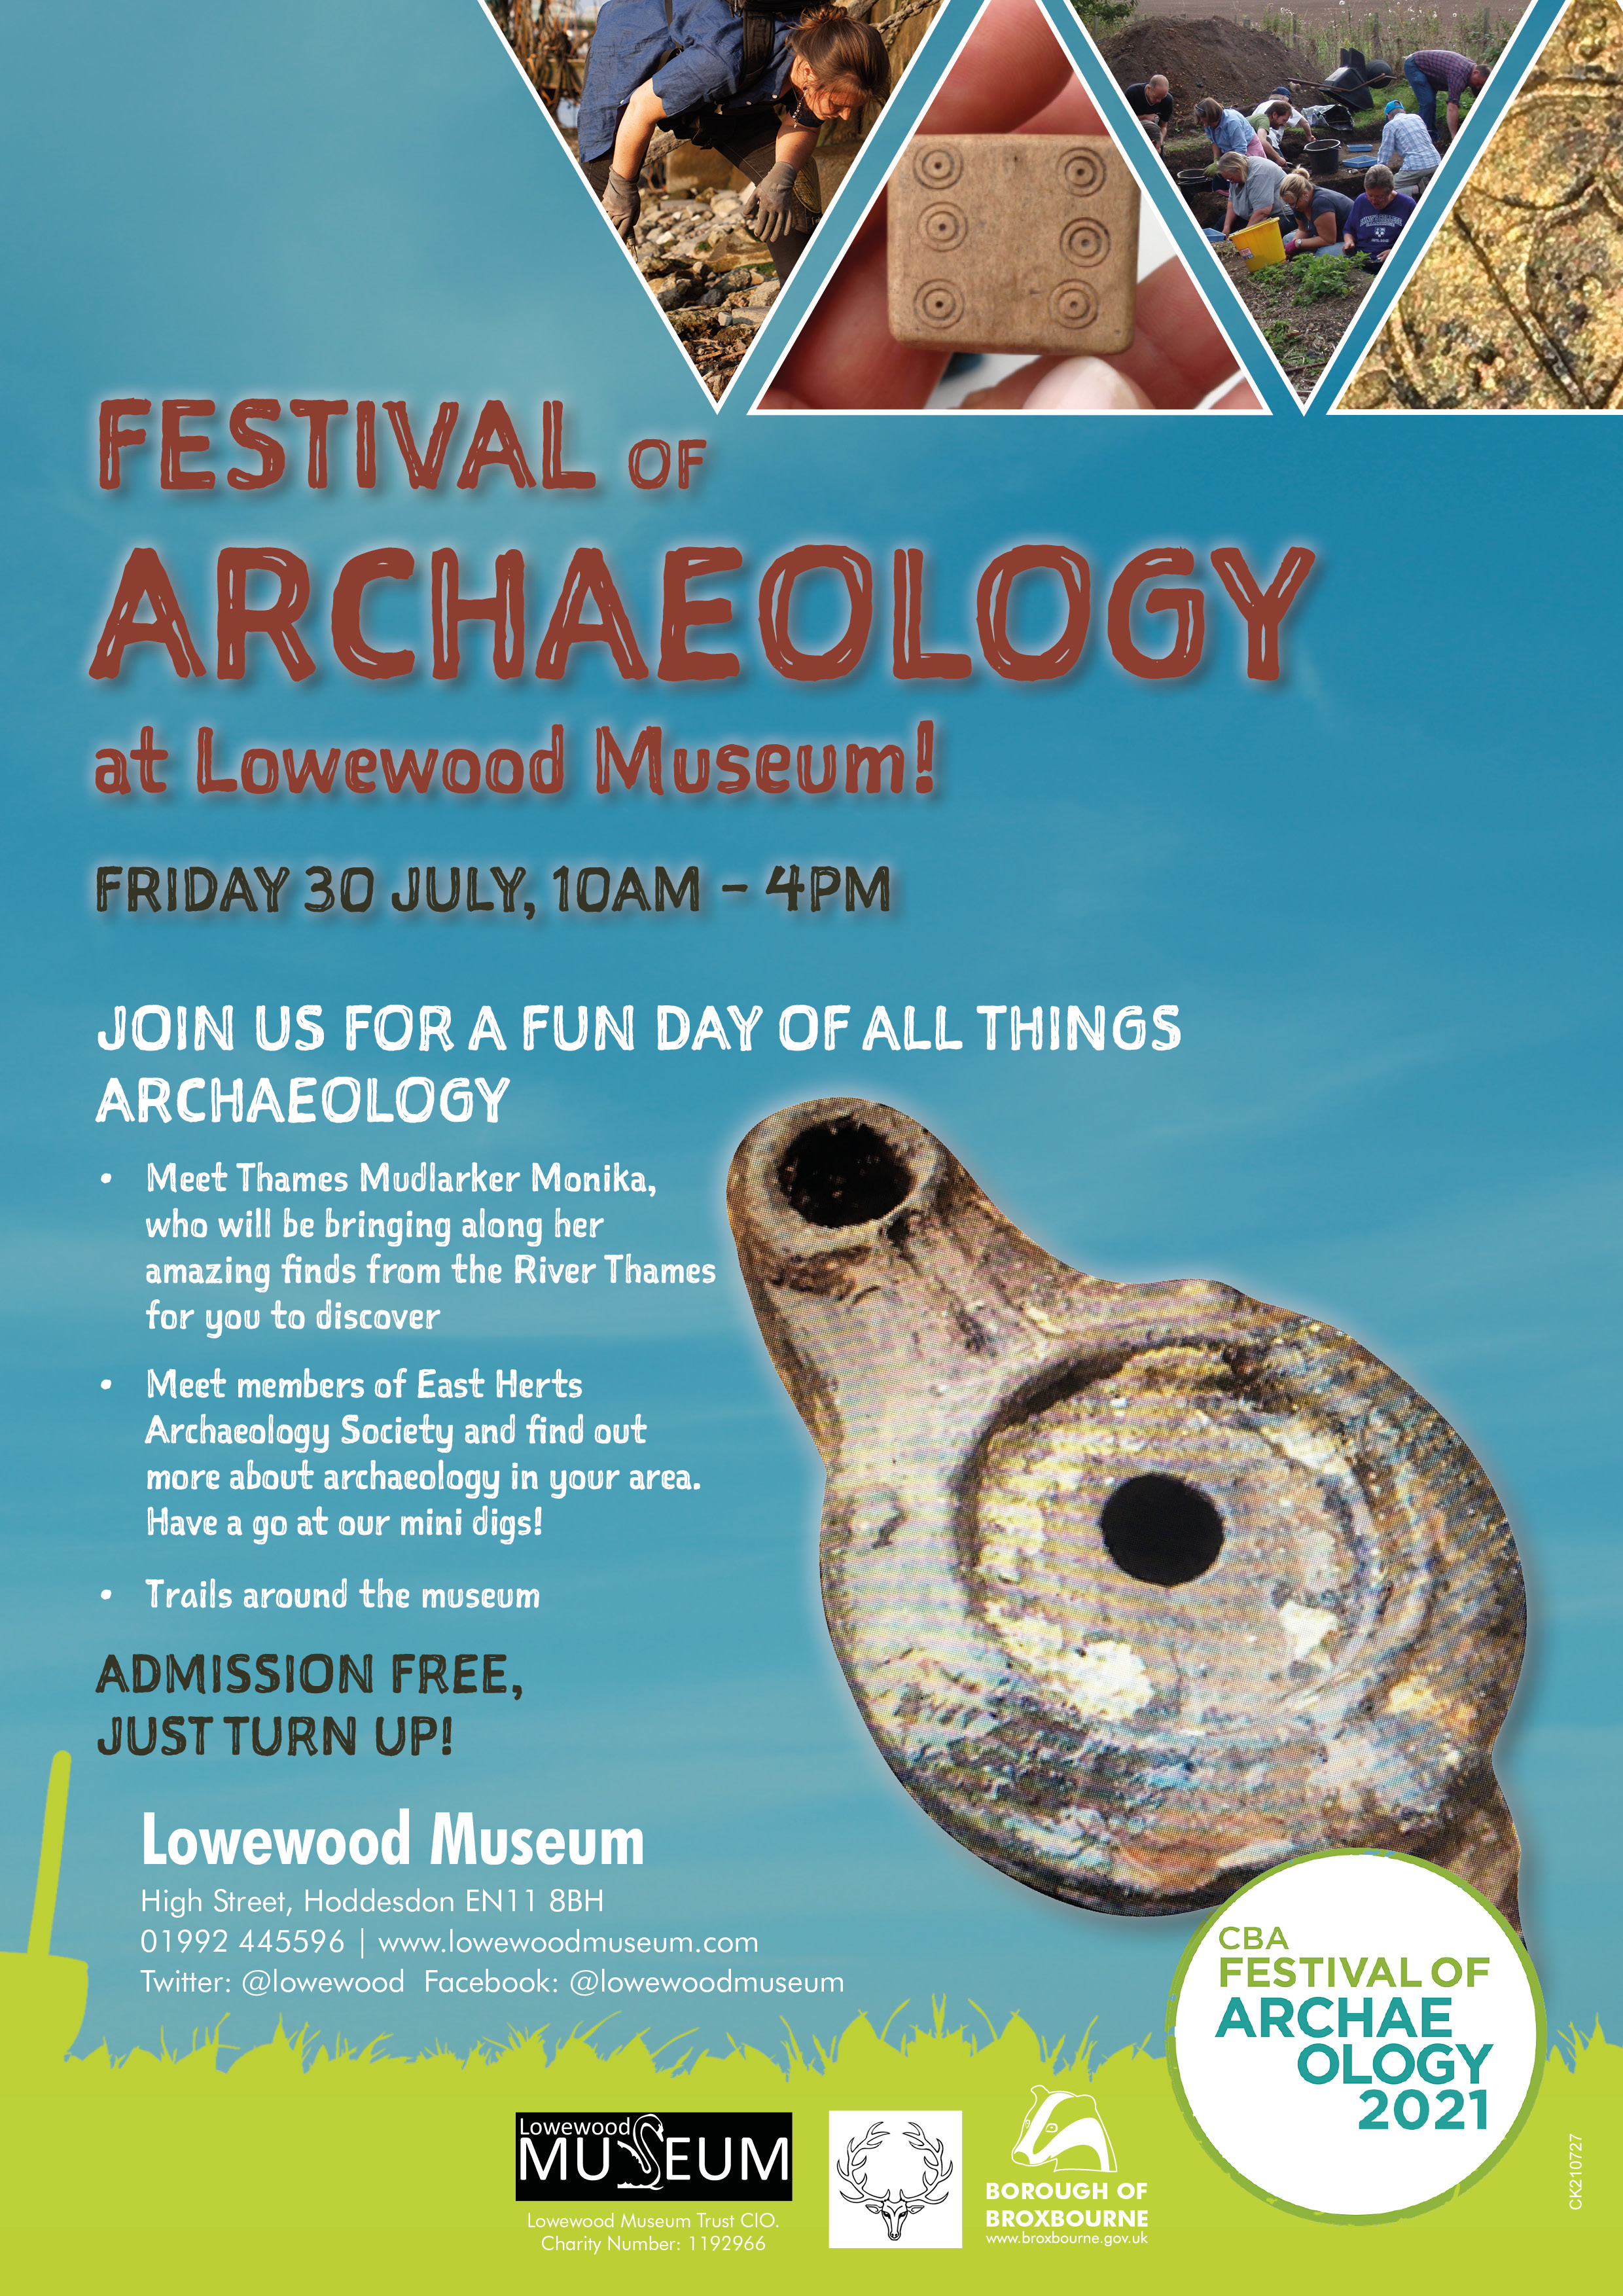 Festival of Archaeology - 30 July 2021